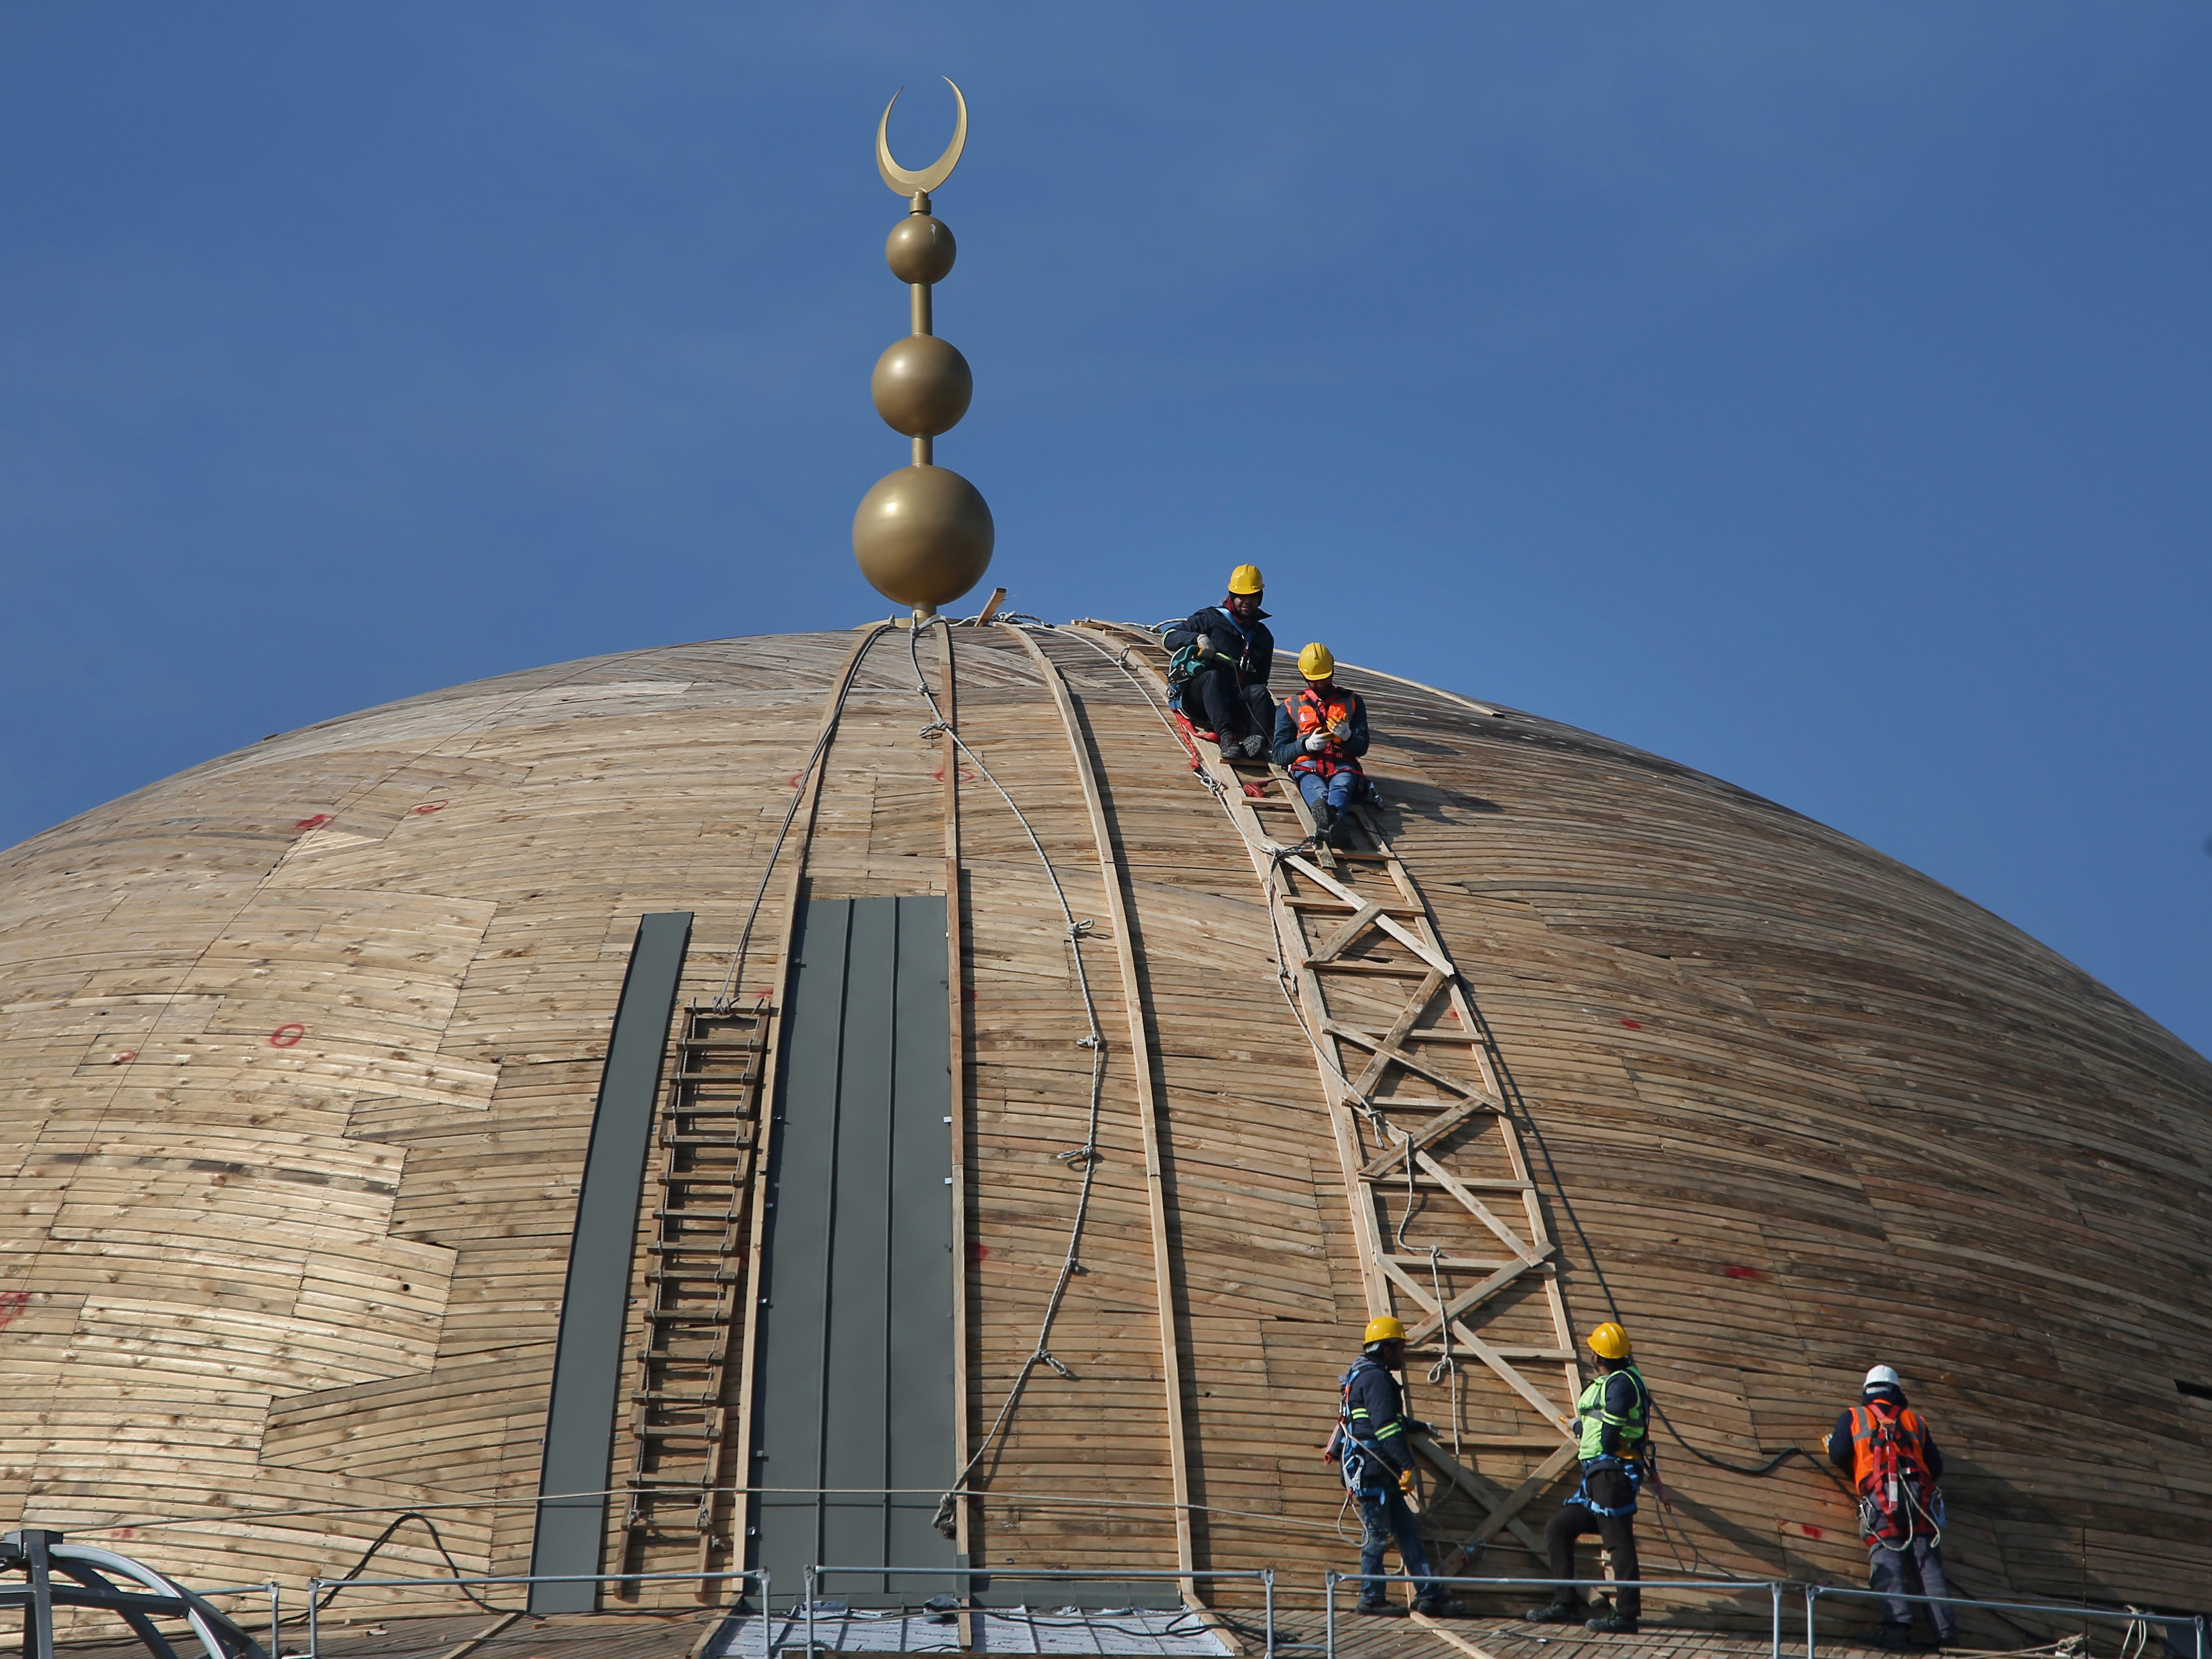 Laborers work at the dome of a mosque under construction in Istanbul, Monday, Feb. 11, 2019. The mosque in the historic Taksim square of Turkey's largest city began to take shape in 2017, is expected to open for prayers this year.